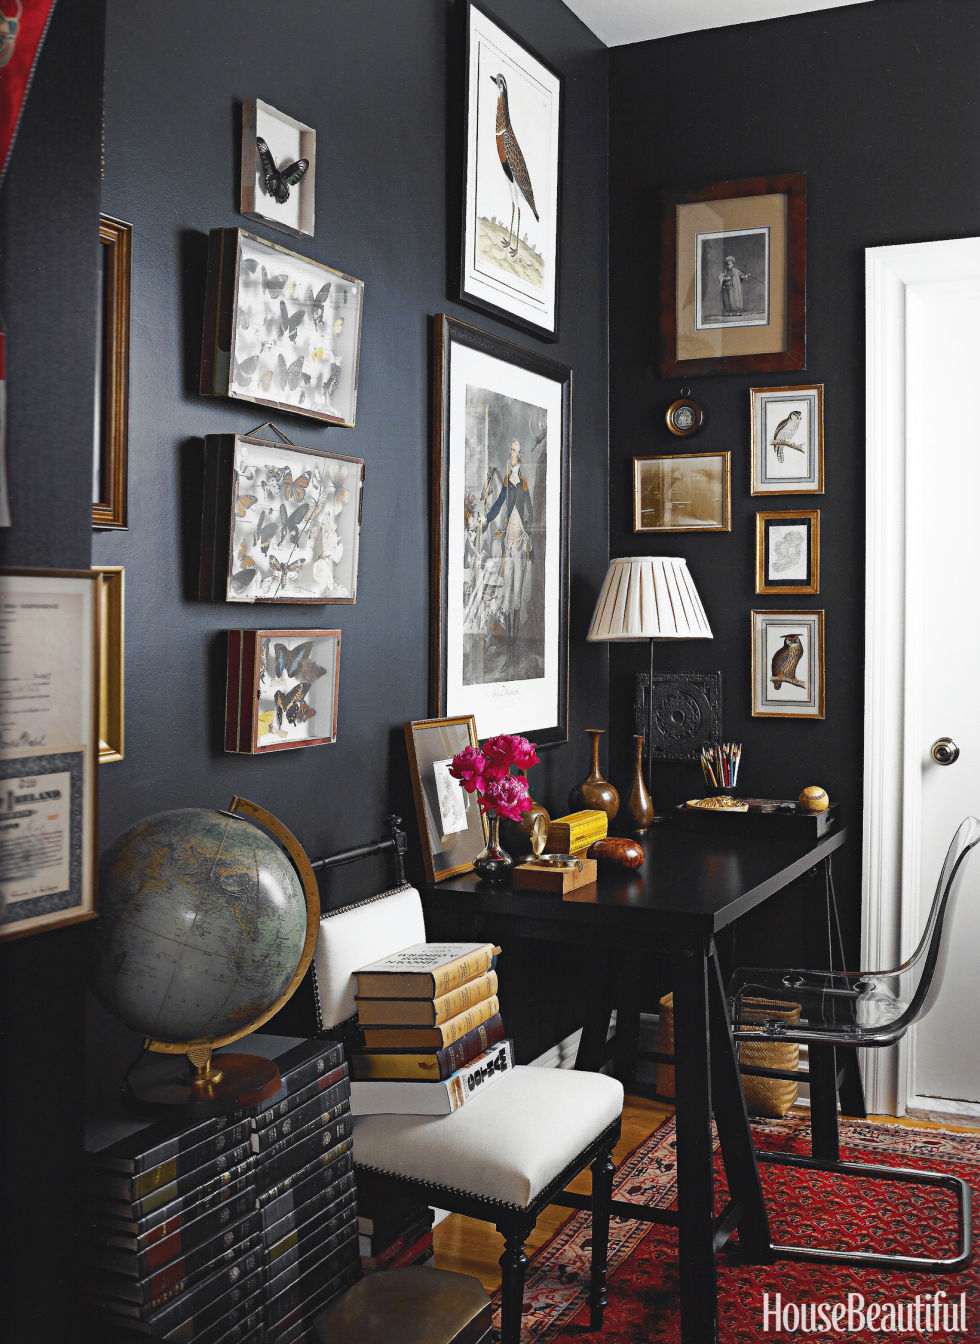 Gallery Wall gallery wall ideas - ways to display art